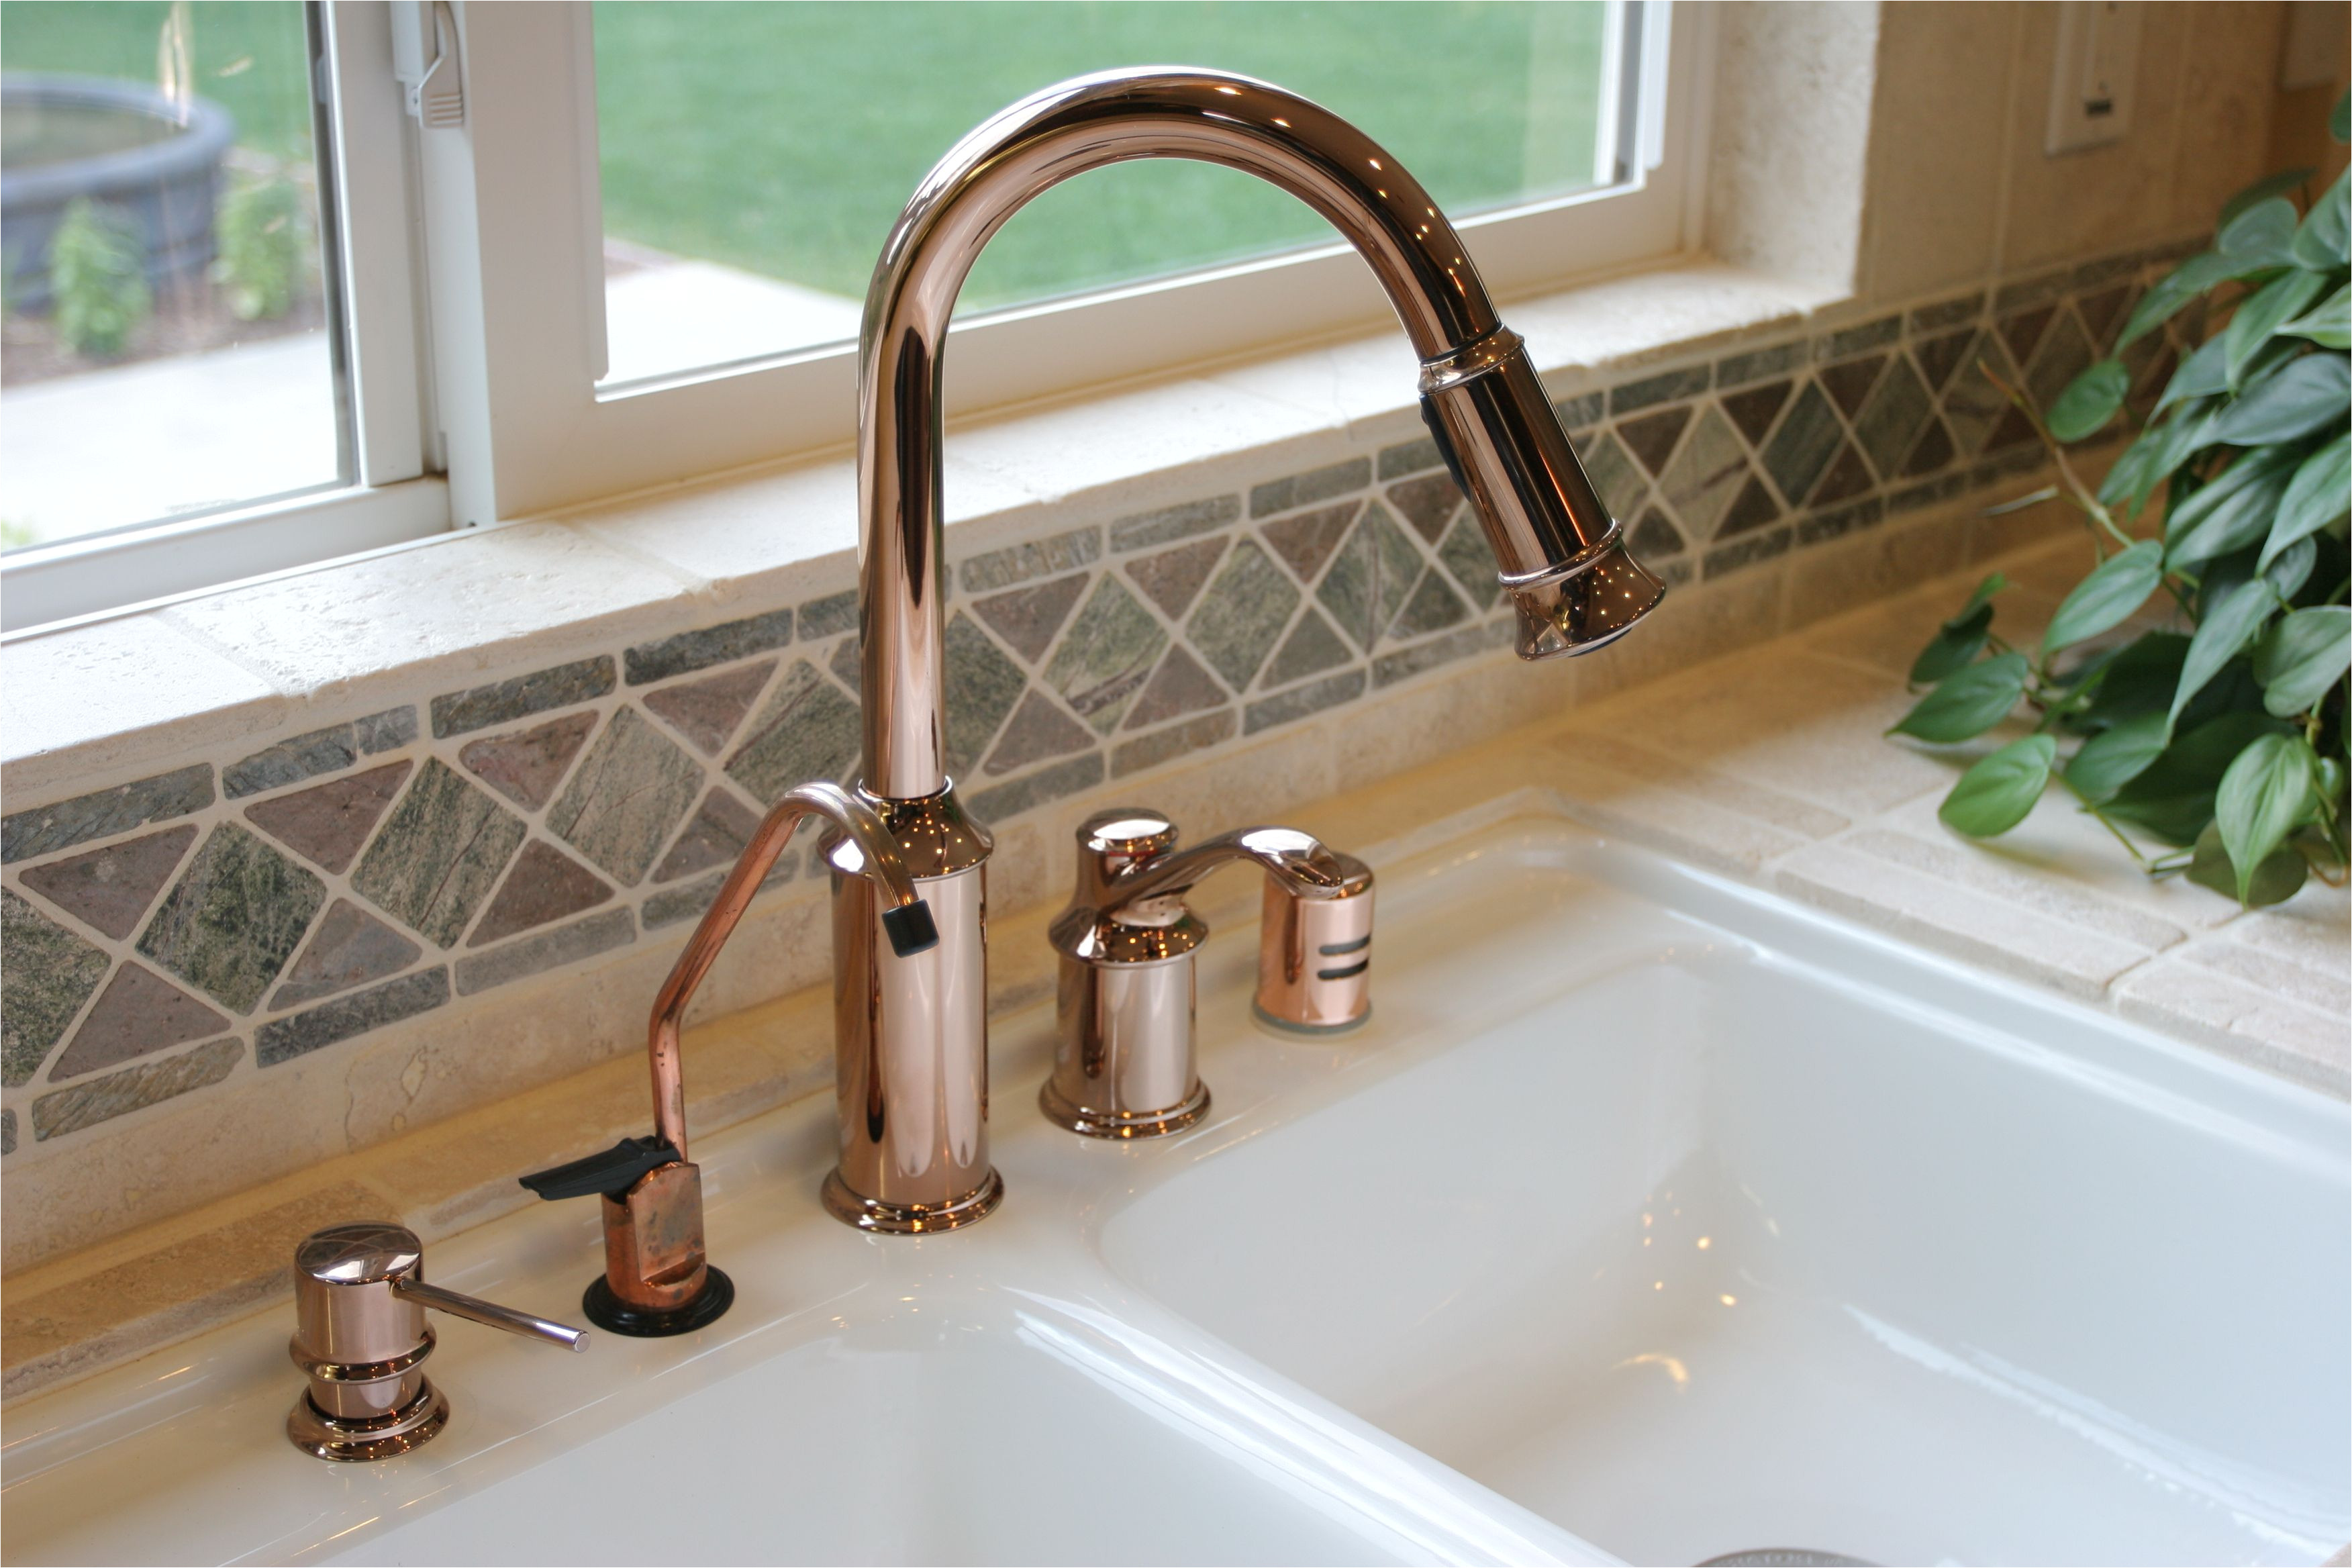 kitchensinksoapdispenser gettyimages 91206440 59e82279054ad90011101a01 jpg